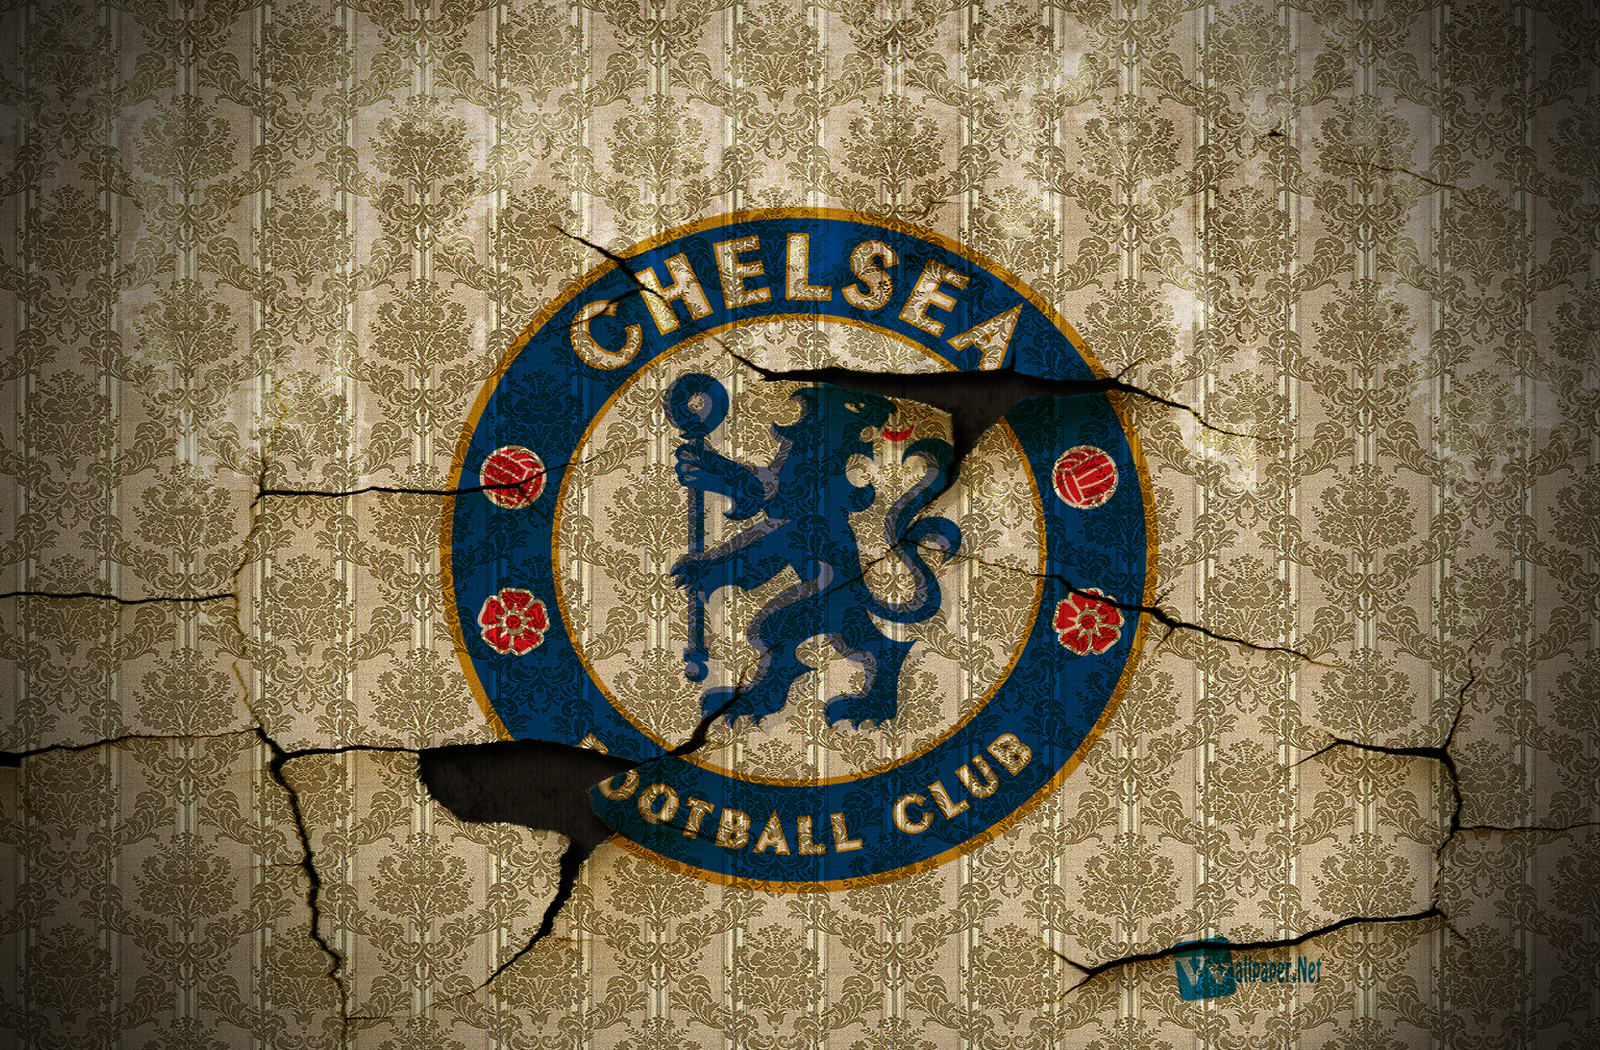 Chelsea Fc Soccer Fresh Hd Wallpaper 2013 | All Football Players HD Wallpapers And Many More...